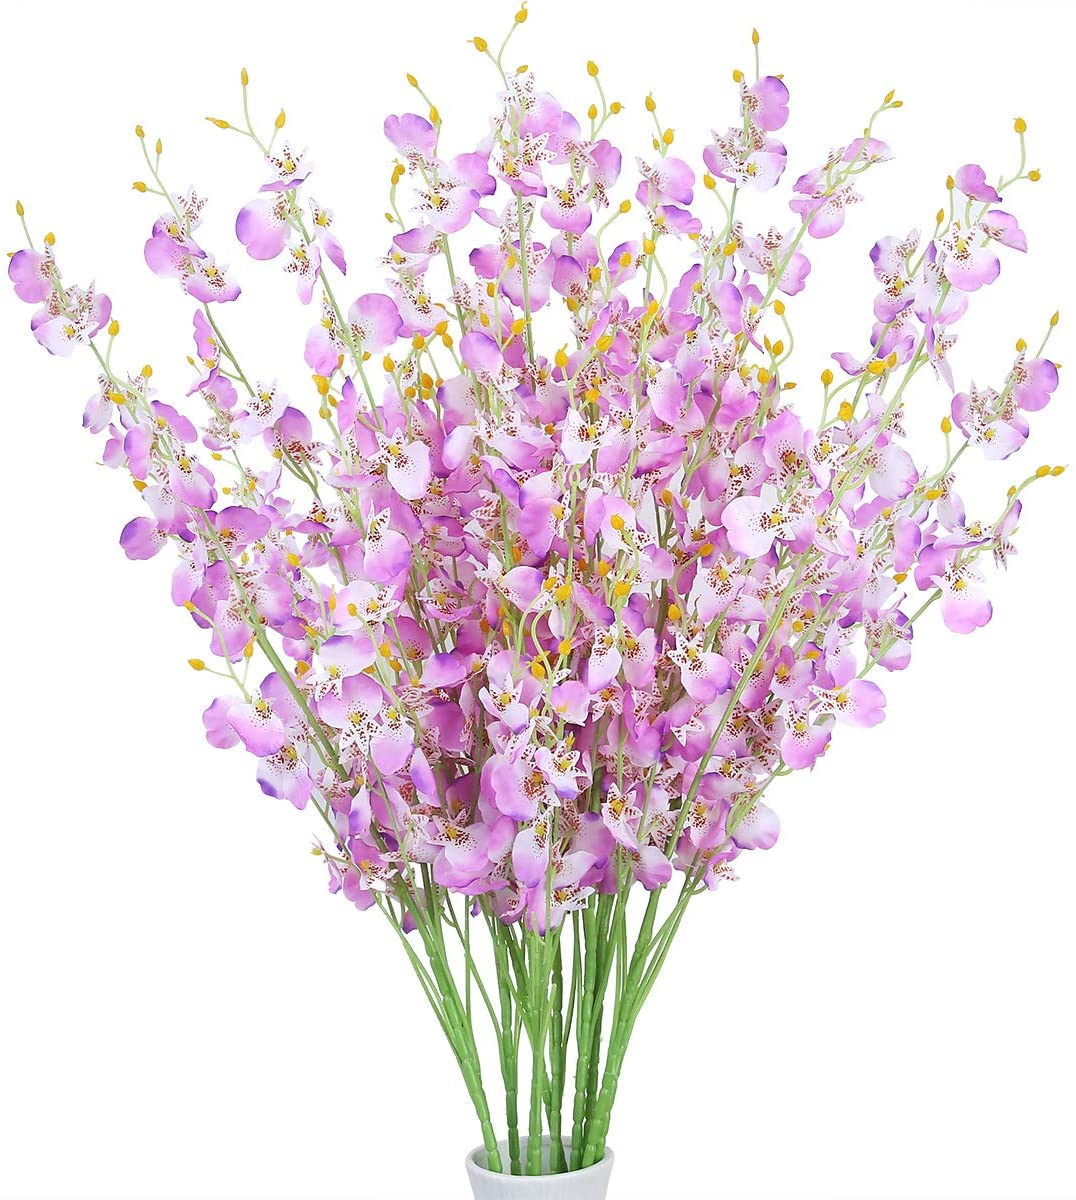 Artificial Orchids Flowers, 10 pcs Silk Fake Dancing Lady Orchids Flowers, Orquideas Flowers Artificial for Wedding Home Office Party Yard Decoration Restaurant Patio Festive Furnishing(Light Purple)